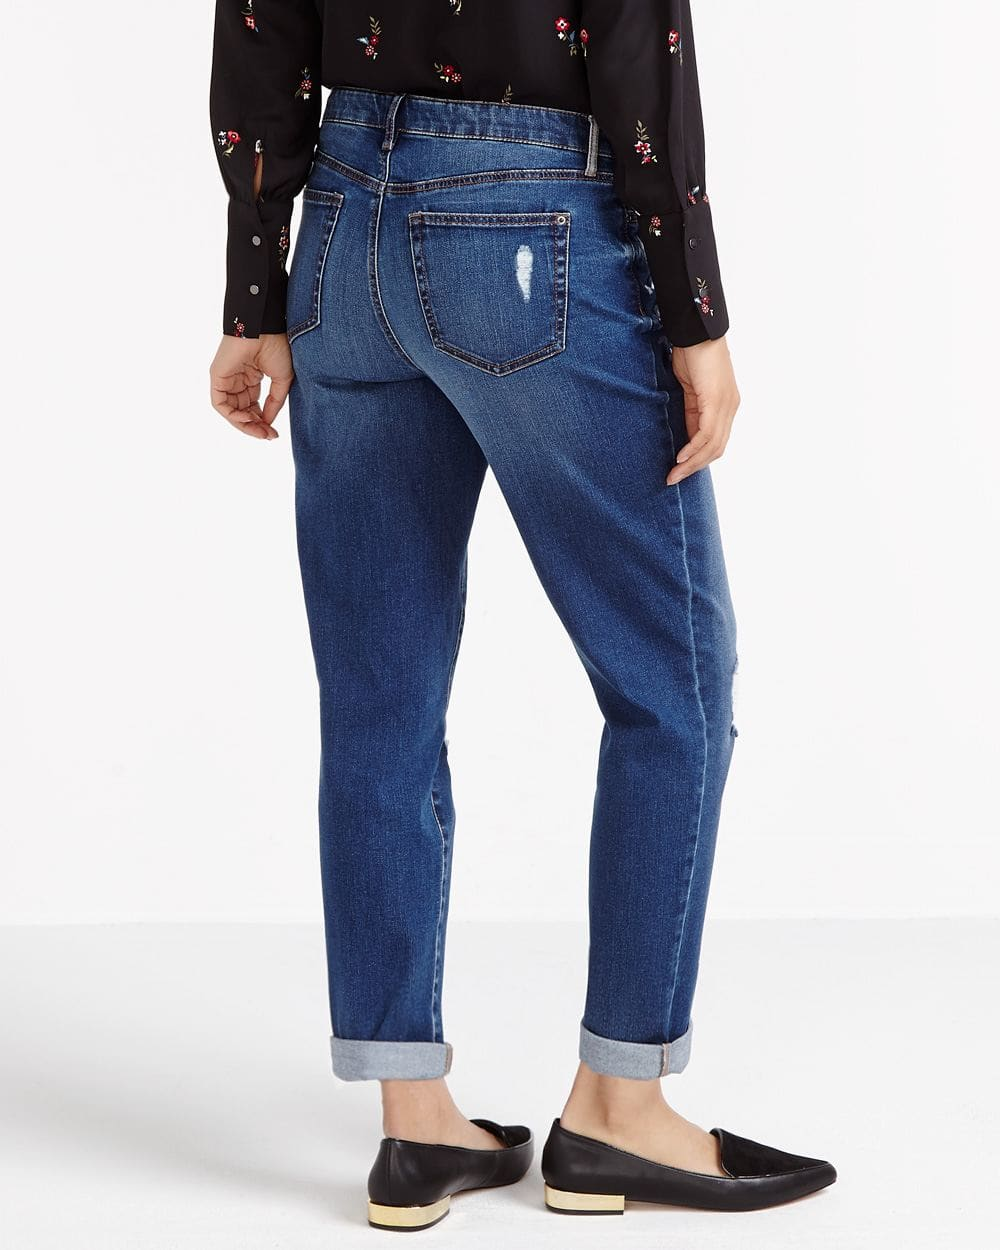 Straight Leg Embroidered Ripped Jeans